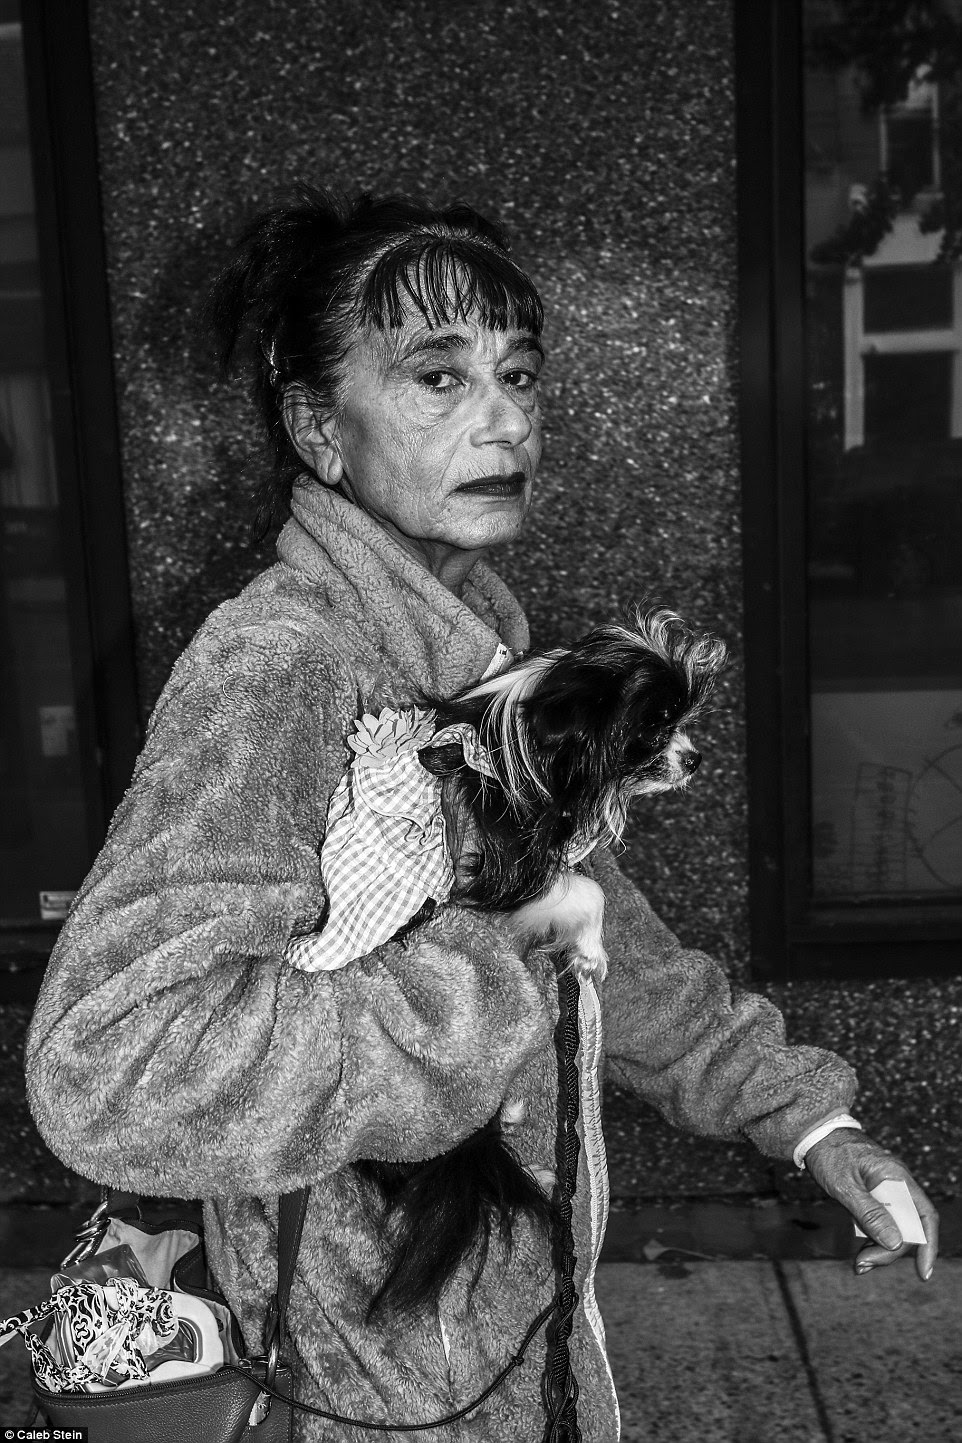 Poughkeepsie resident Rebecca is pictured above walking down Main Street in the city with her dog, Ruby